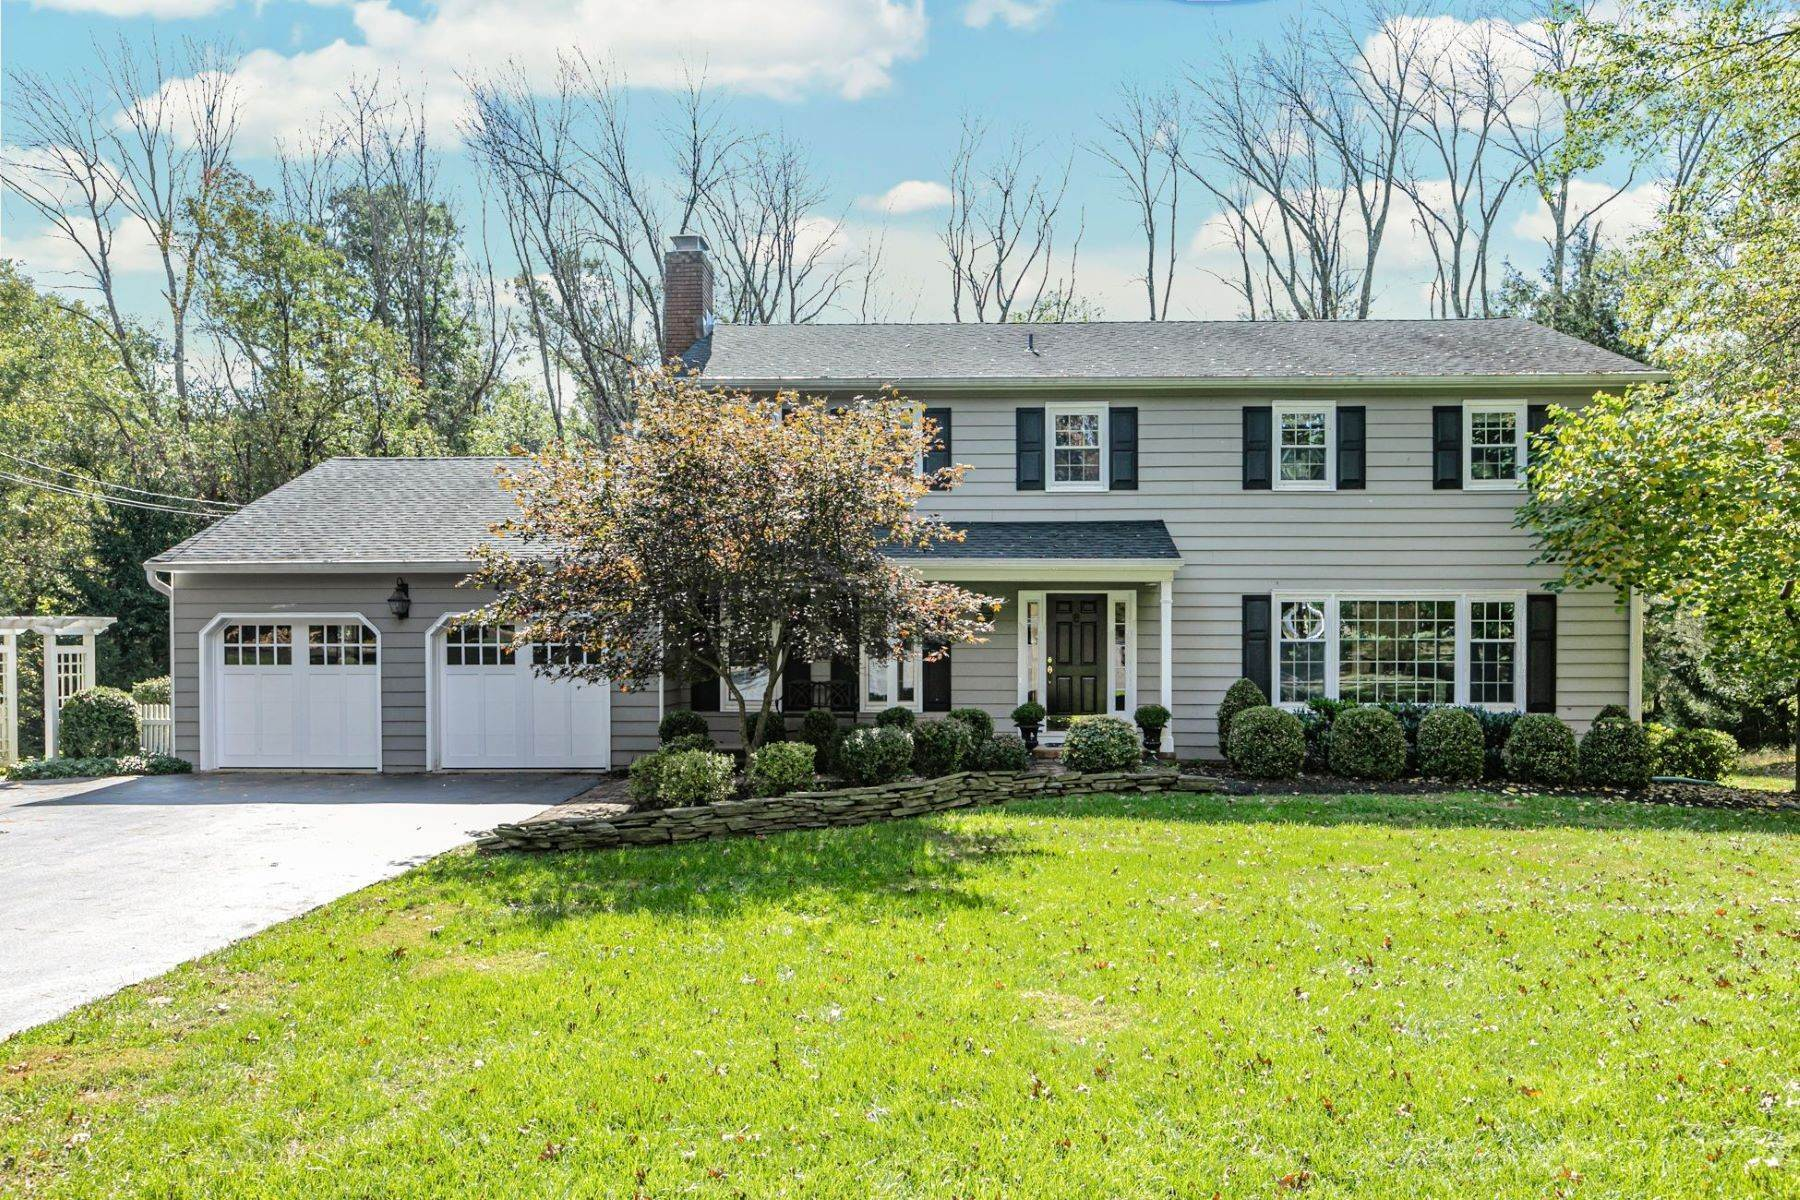 Single Family Homes for Sale at Expansive Colonial On A Rocky Hill Cul-de-sac 68 Hickory Court Rocky Hill, New Jersey 08553 United States